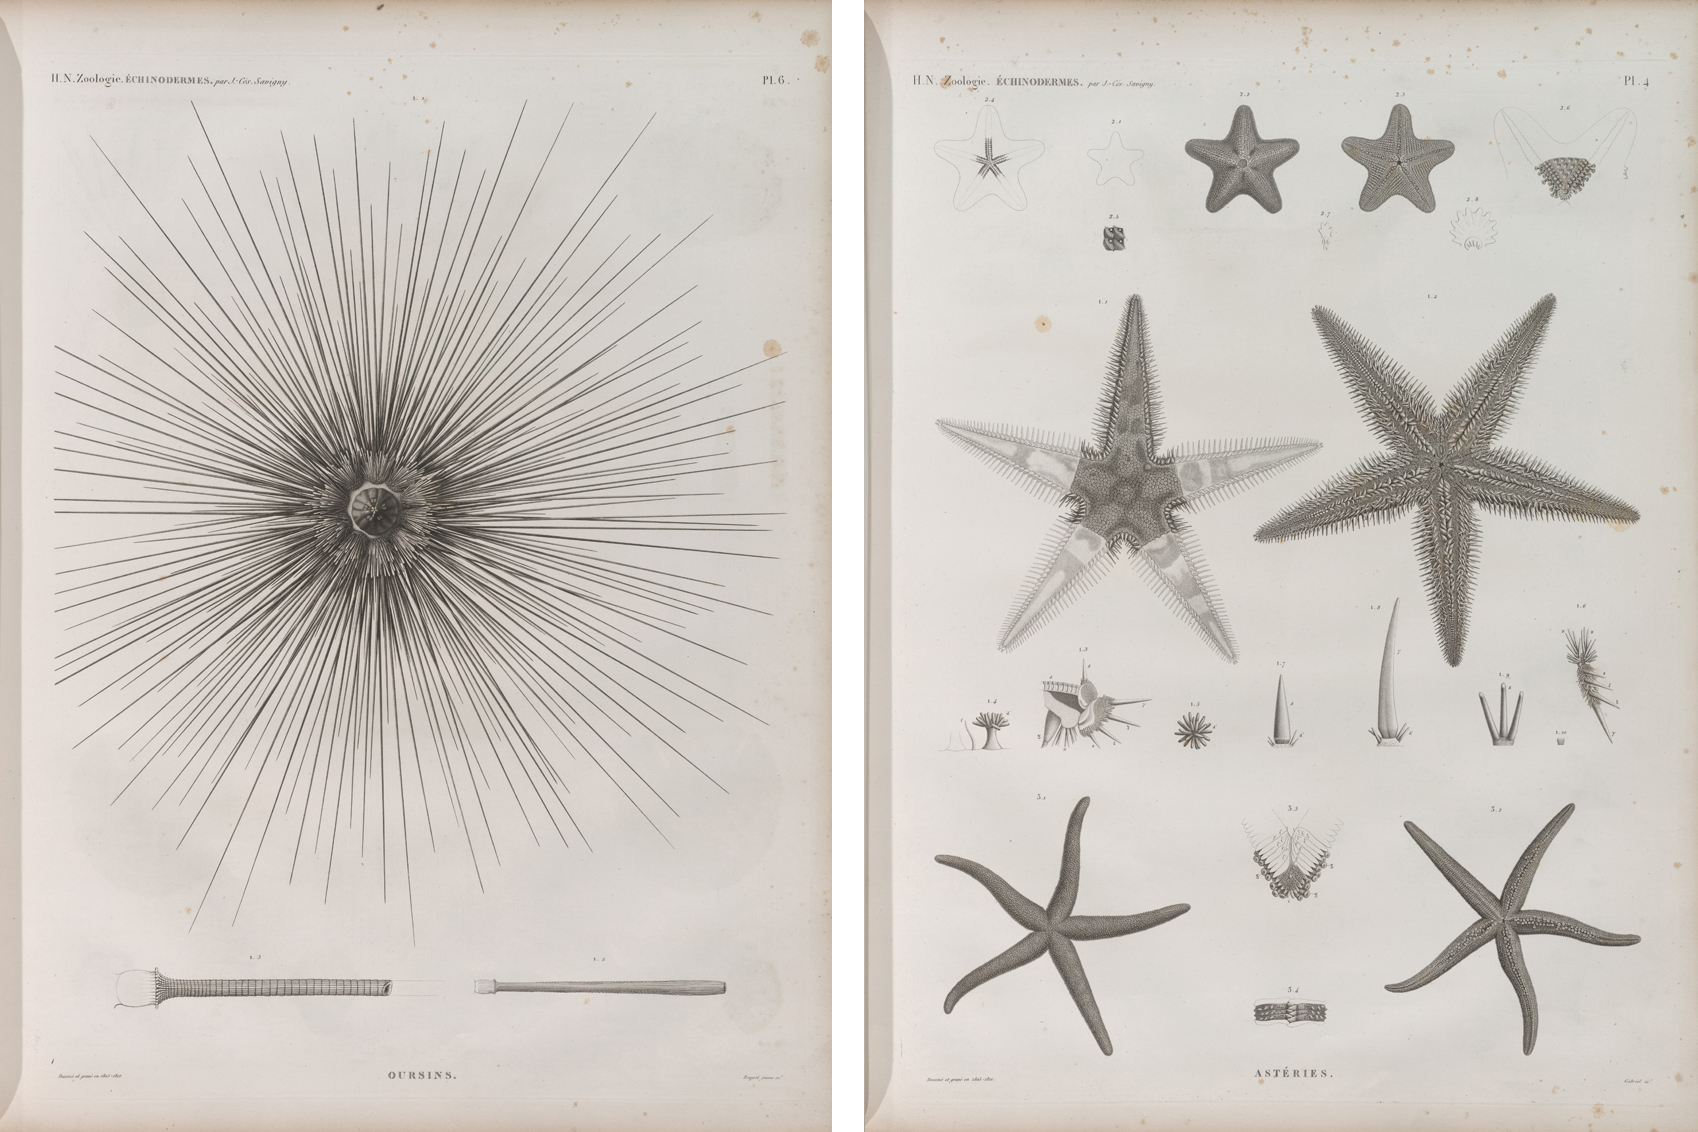 Zoologie stipple engravings or sea urchins, 1805-1812, in Egypt during the expedition of the French army